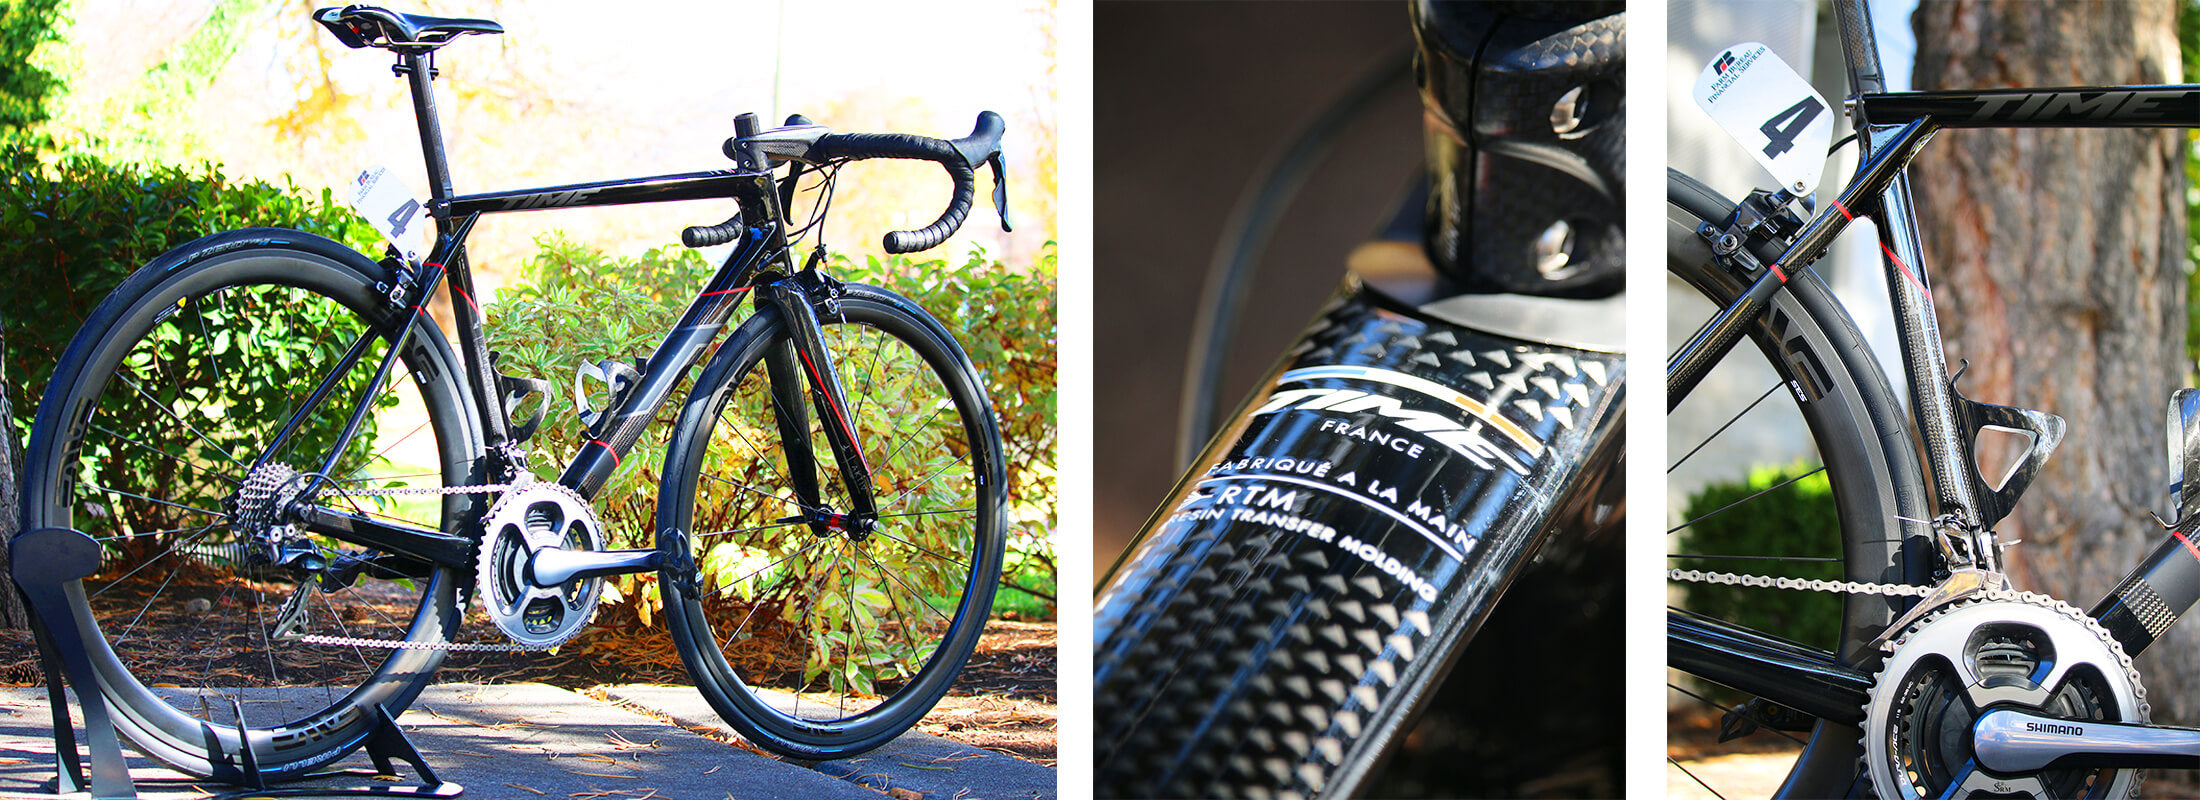 2019 TIME Alpe d'Huez 21 Road Bike - Contender Bicycles